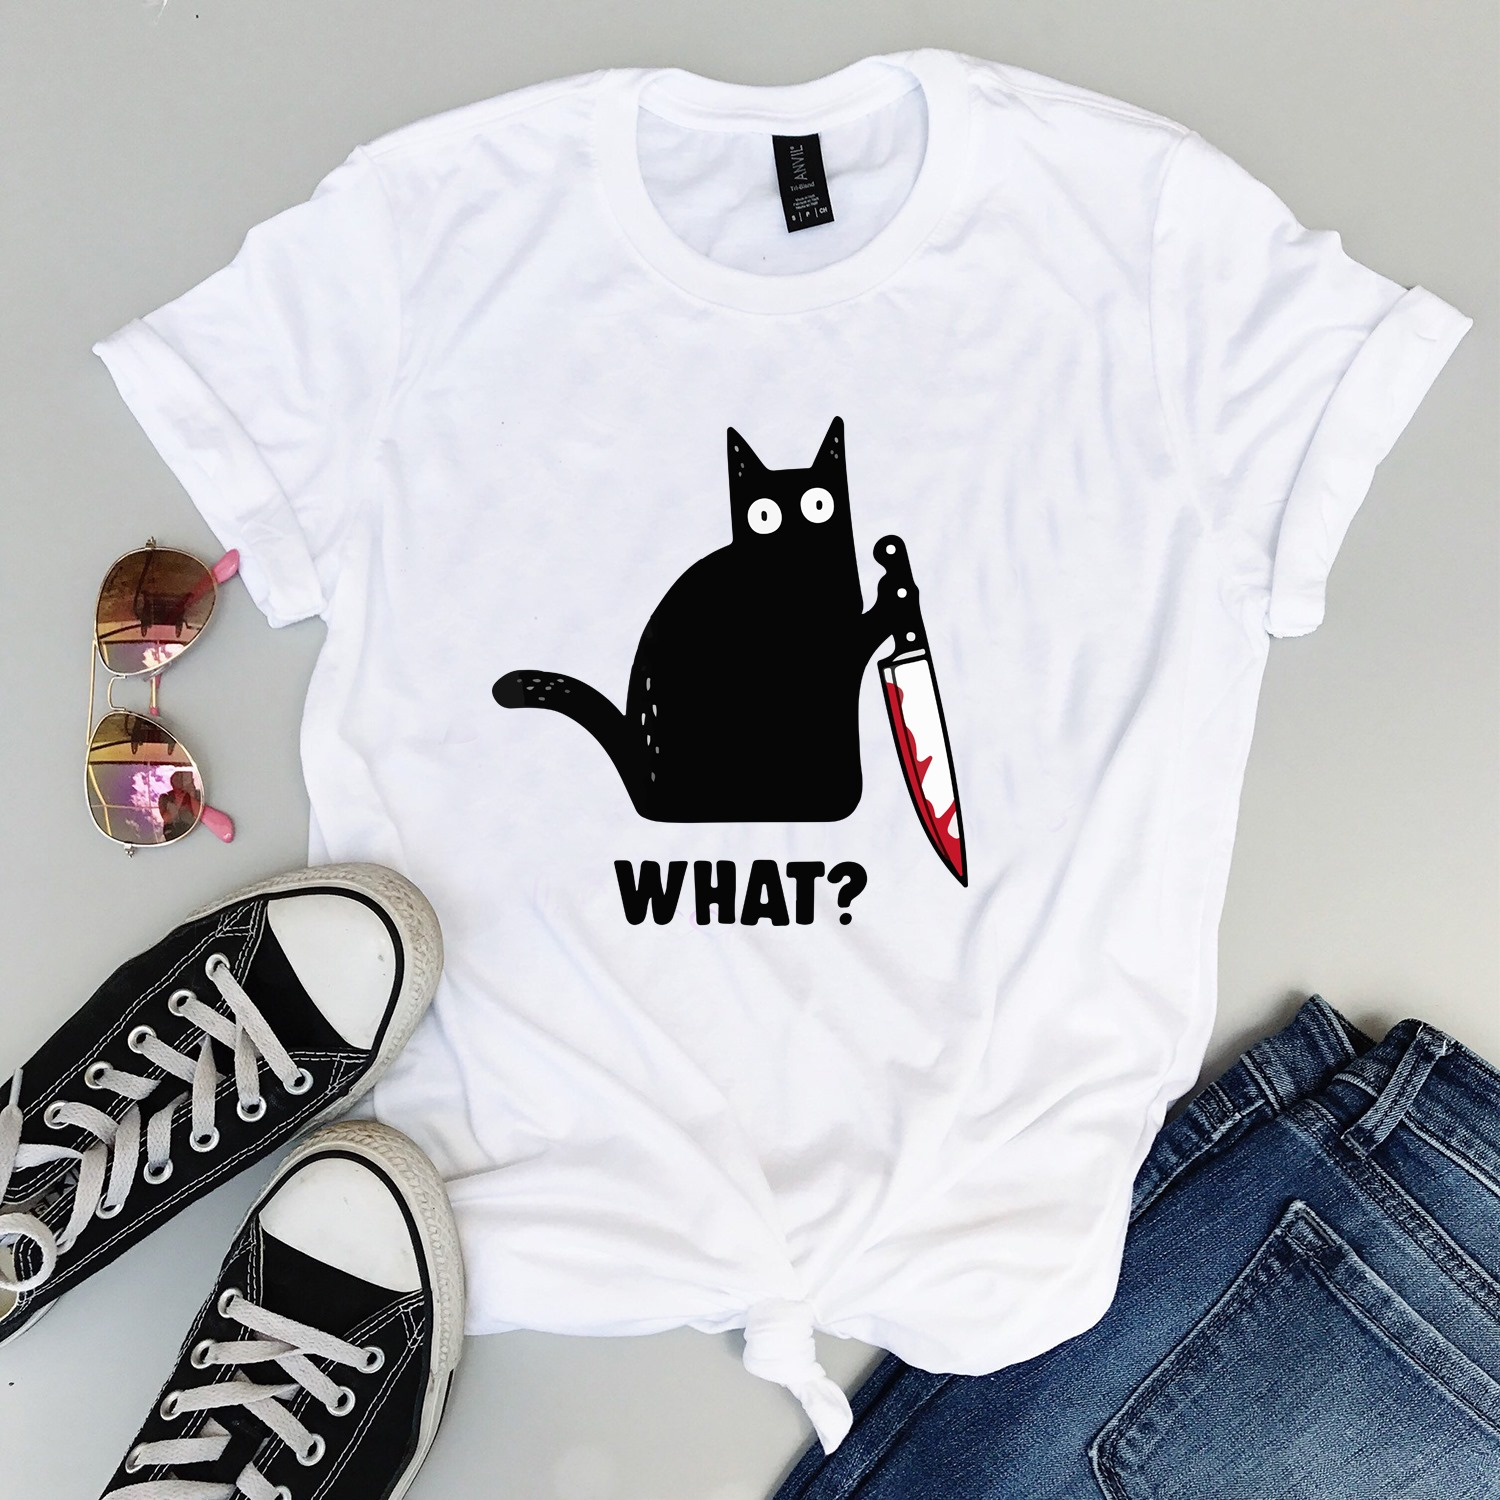 Bad cat with knife Women T-Shirt